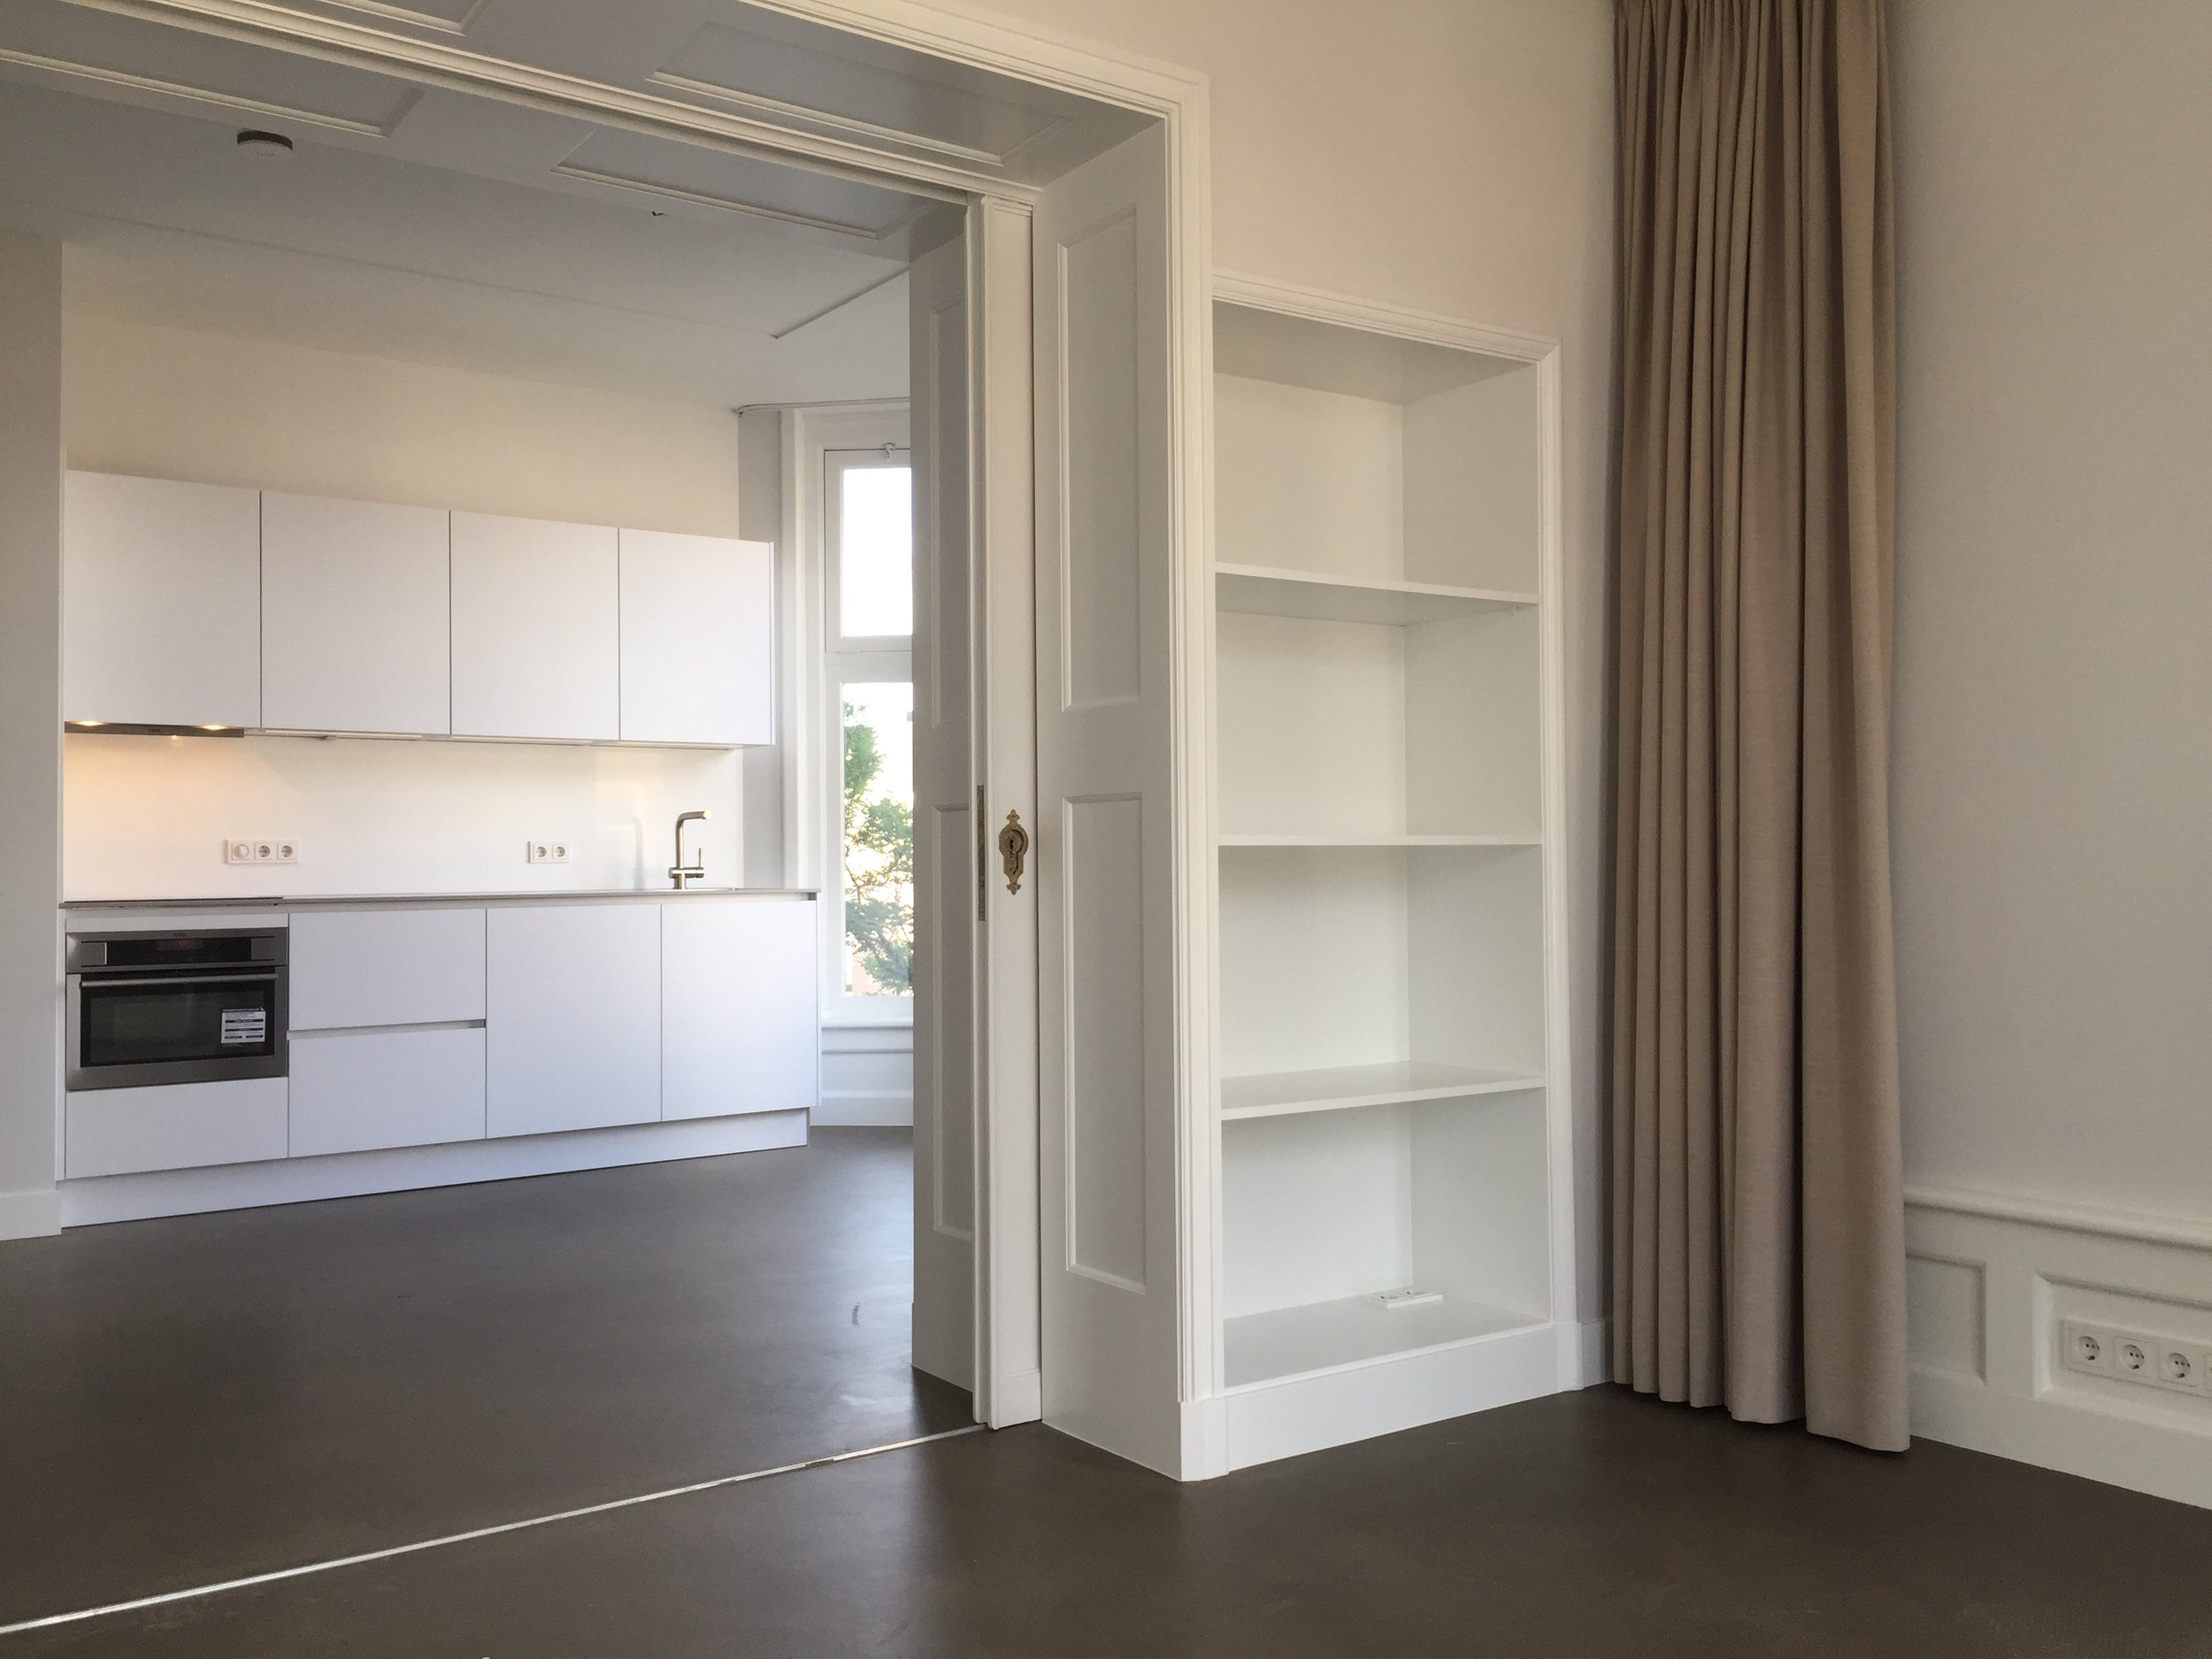 the classical ensuite separation was restored, allowing the apartments to maintain their classical feel